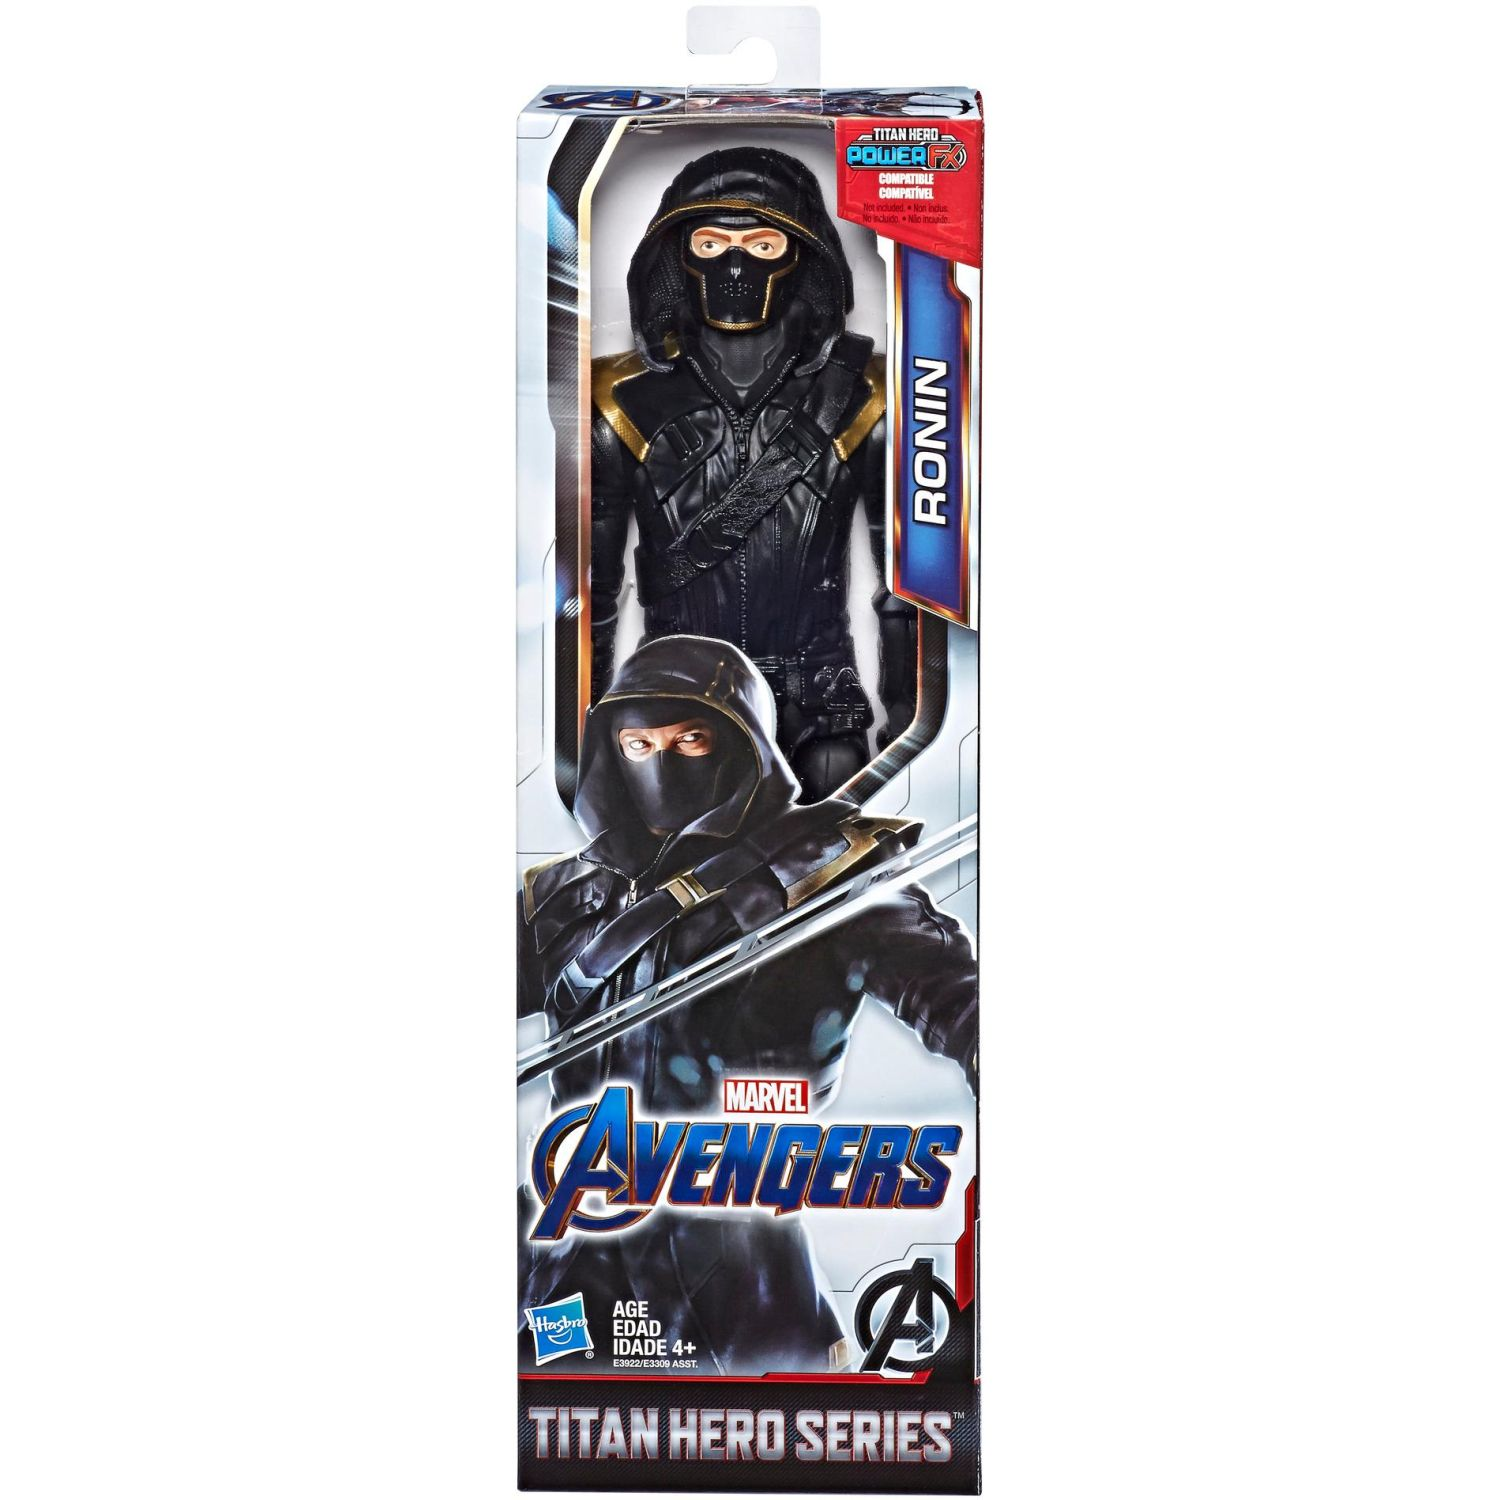 Avengers avn titan hero movie ronin Varios Figuras de acción